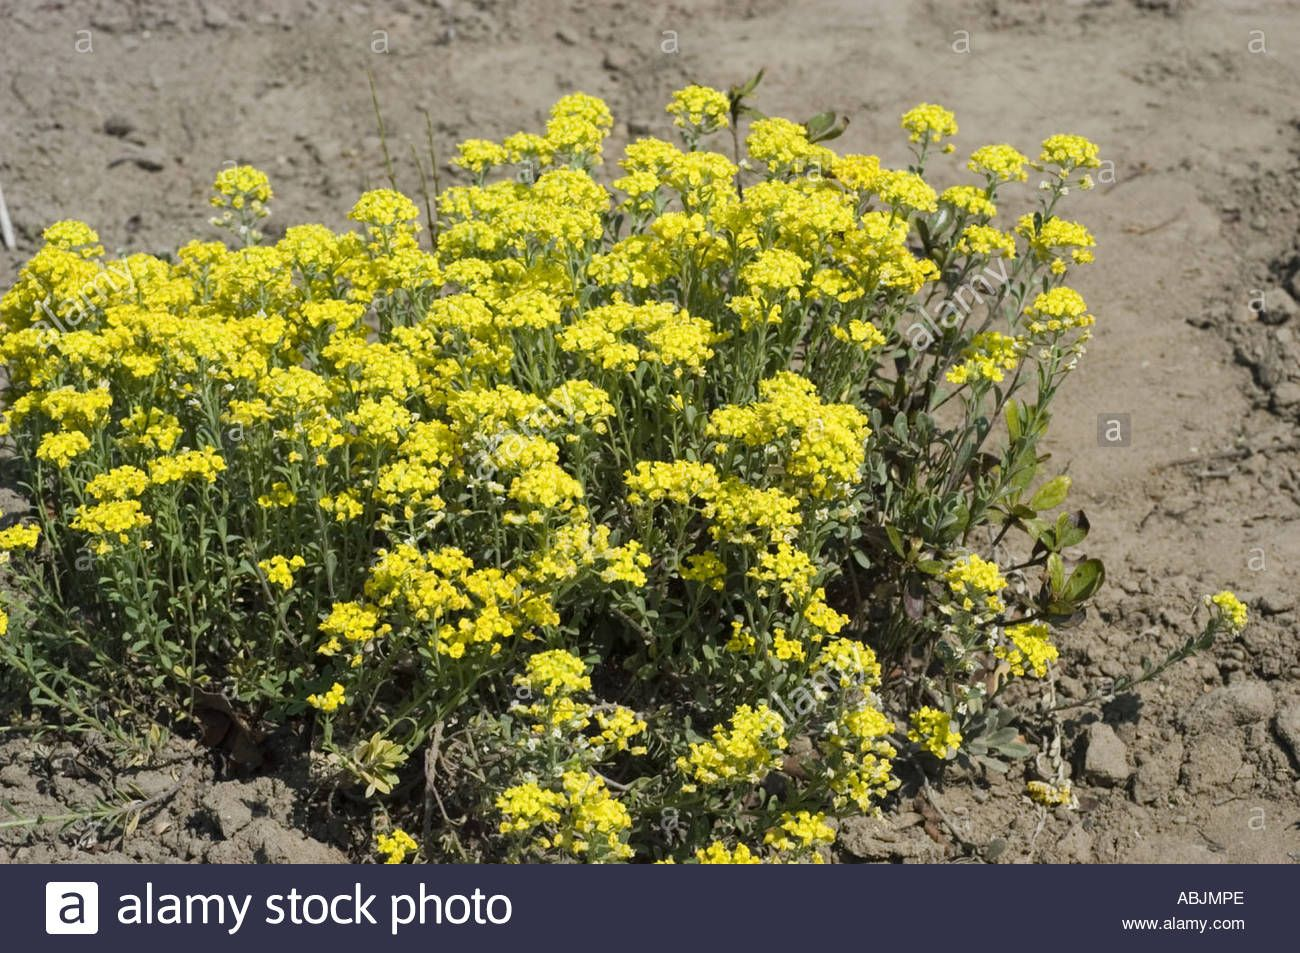 Download This Stock Image Plenty Of Small Yellow Flowers